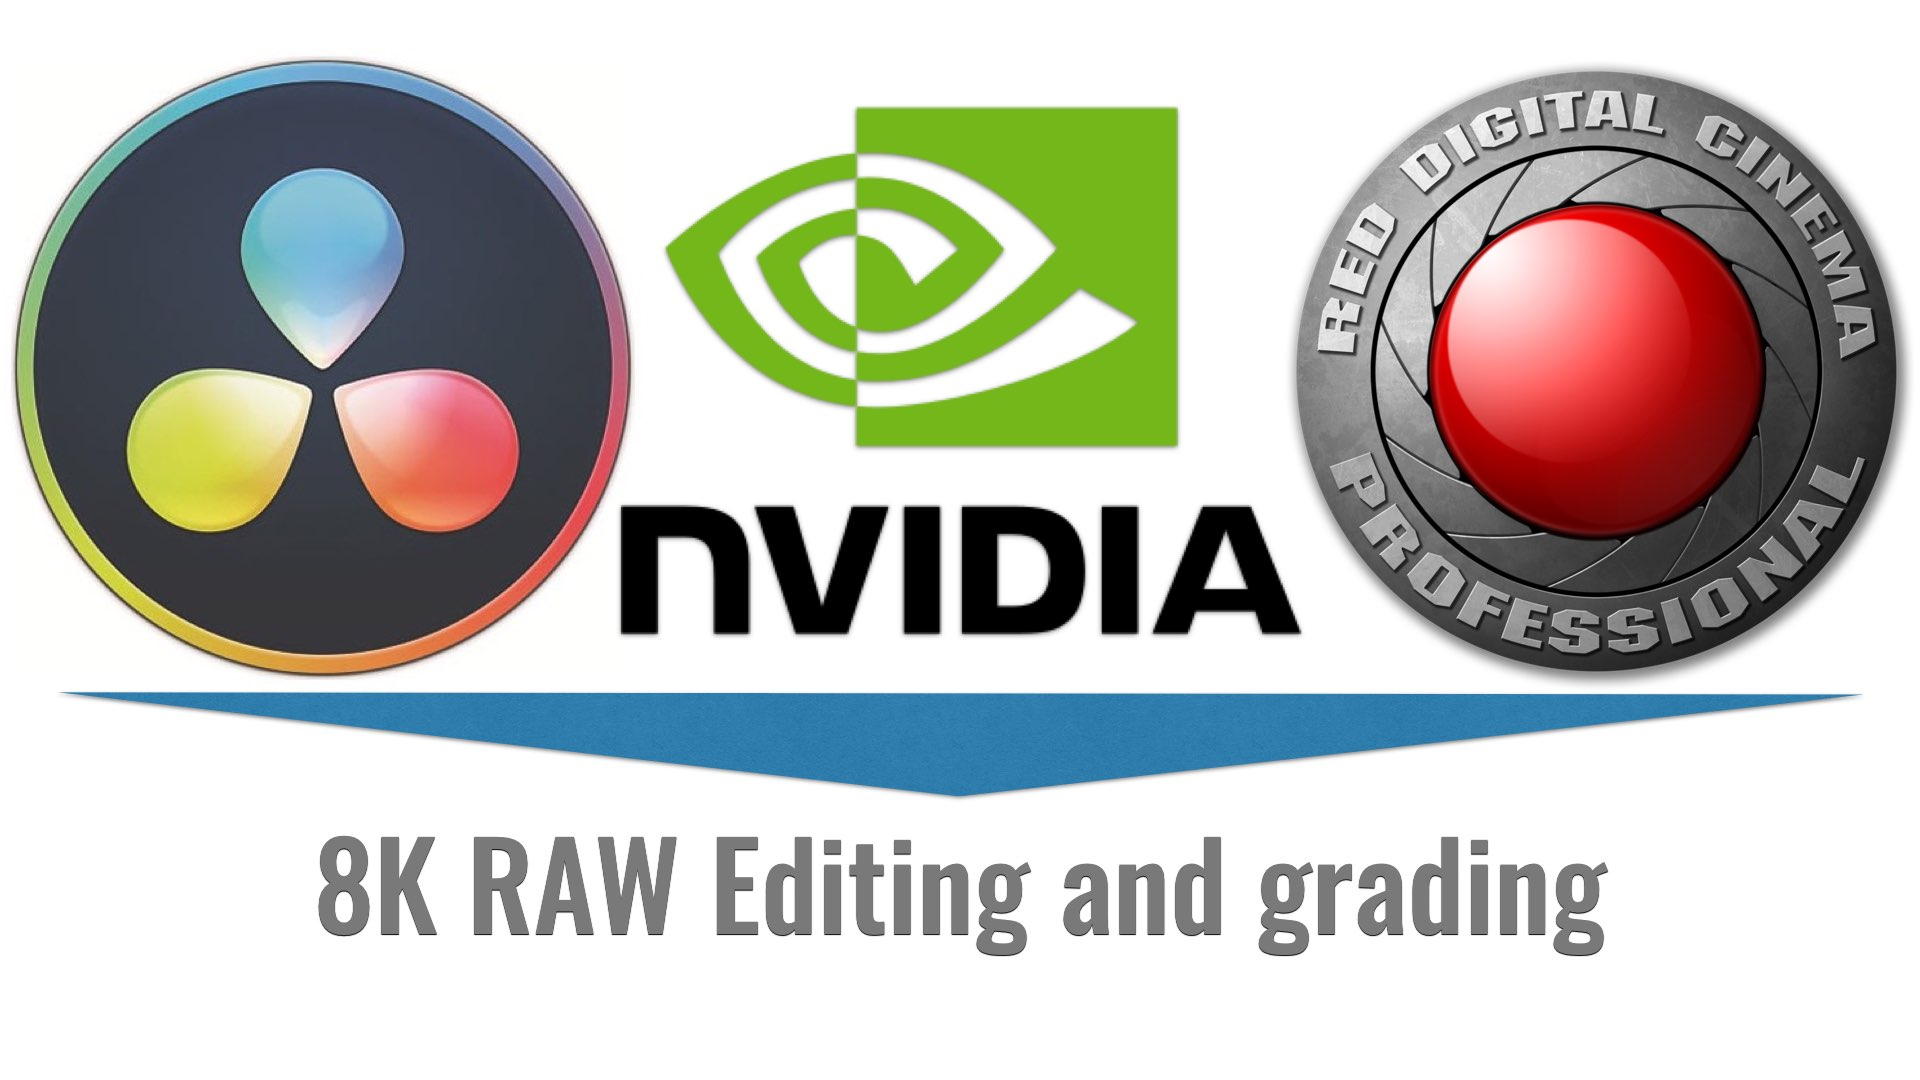 Nvidia Demonstrates How To Edit 8k Raw Faster In Resolve Using A Laptop Y M Cinema News Insights On Digital Cinema